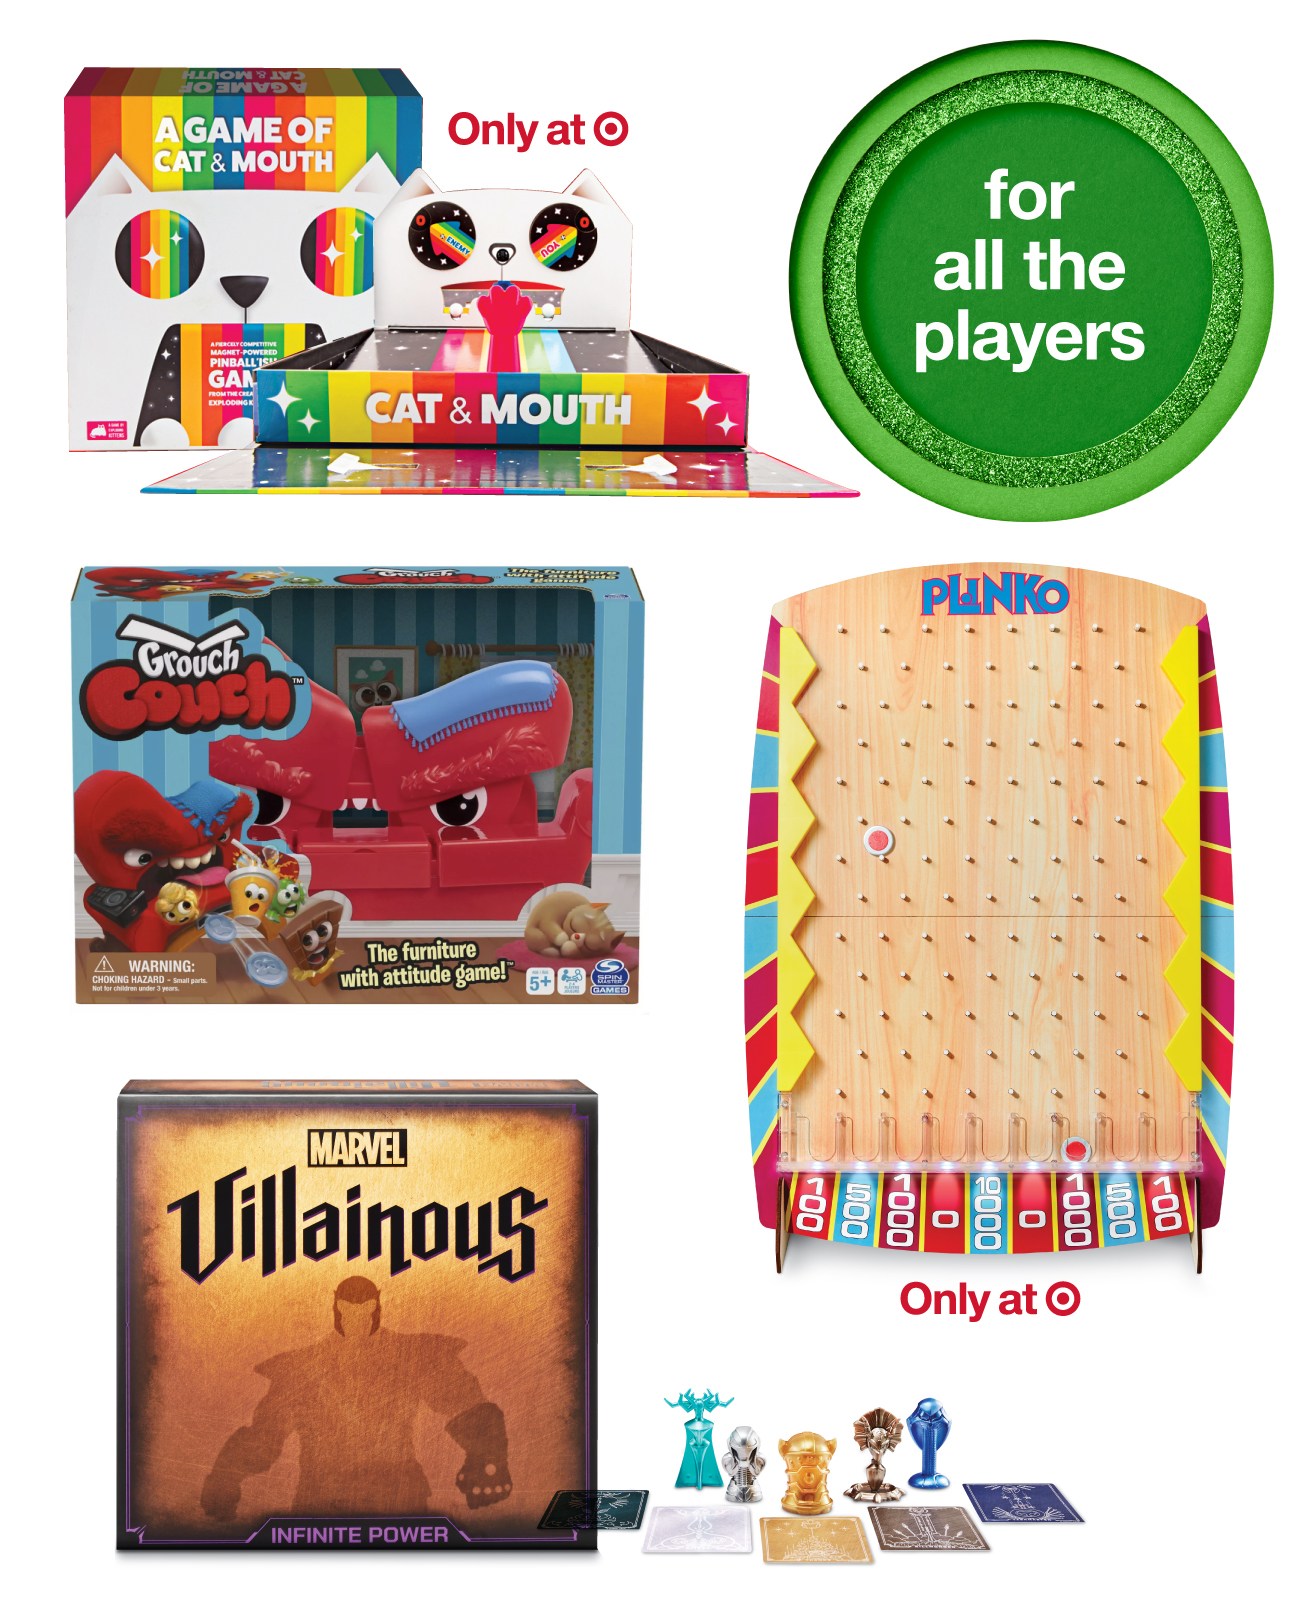 A collage of top toys and games for players